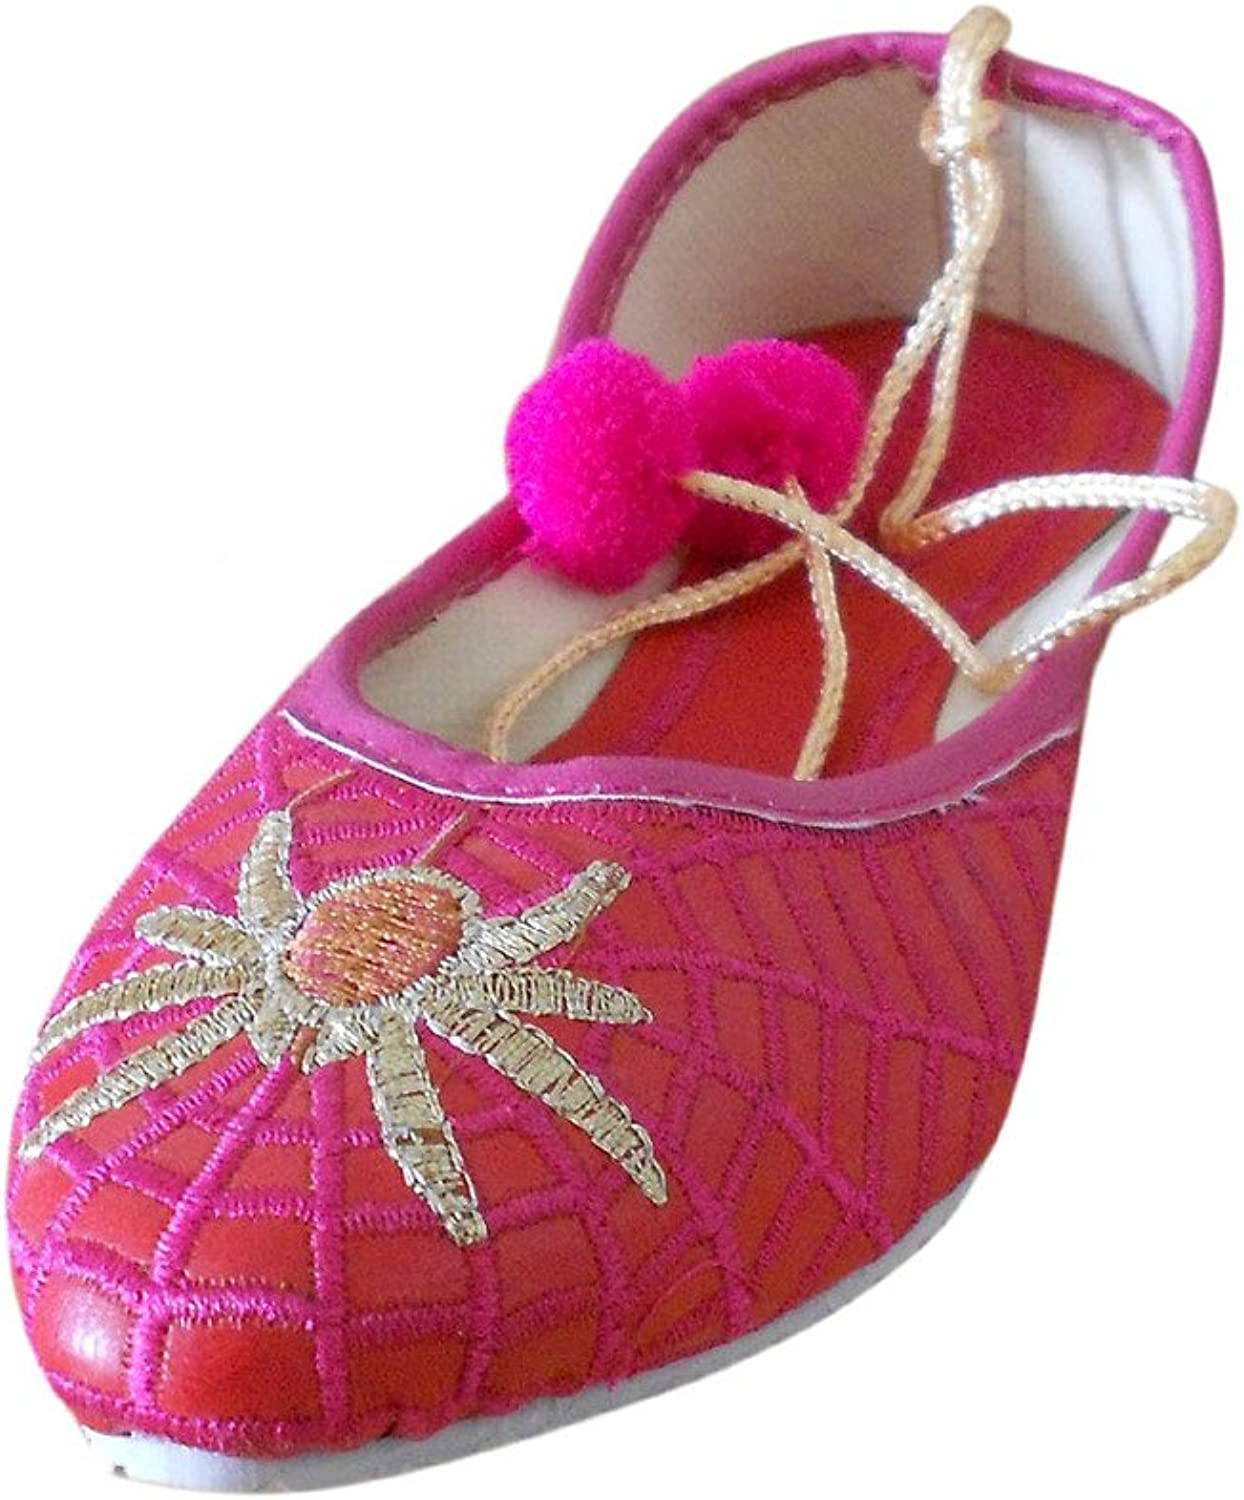 Kalra Creations Jutti Indian Women's Traditional Faux Leather with Embroidery Ethnic shoes